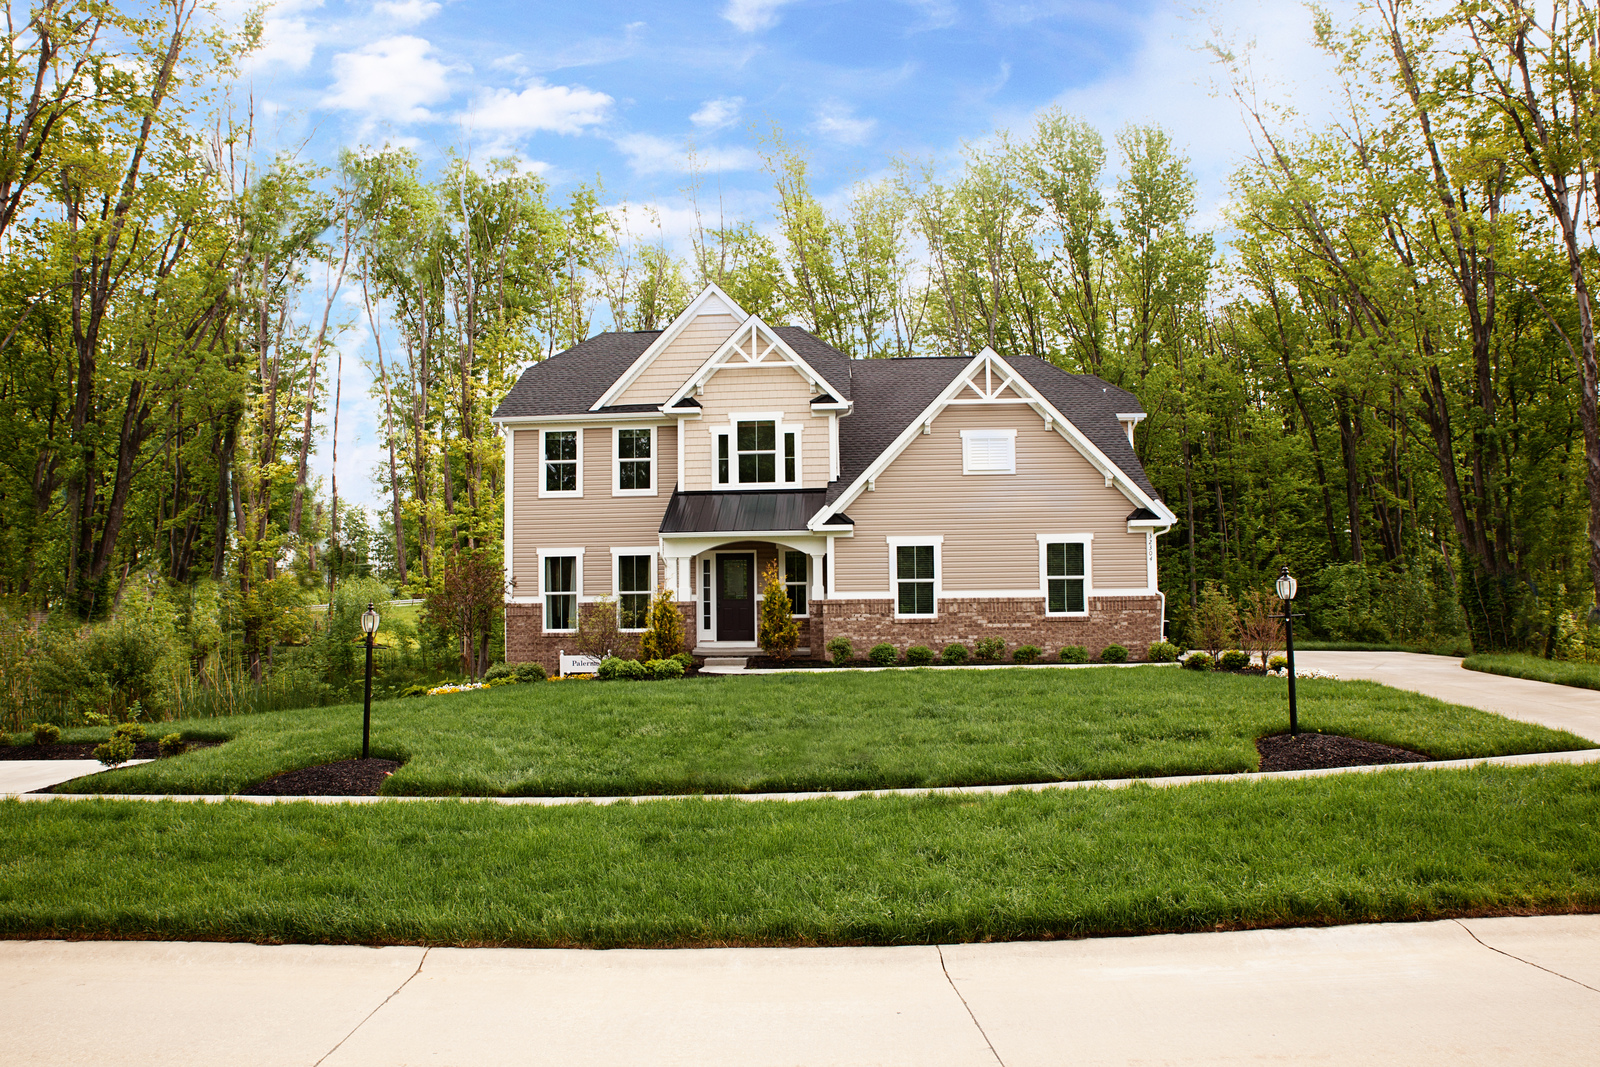 Come home to a beautiful home on the home site you've dreamed of- wooded backdrop or a mountain view!